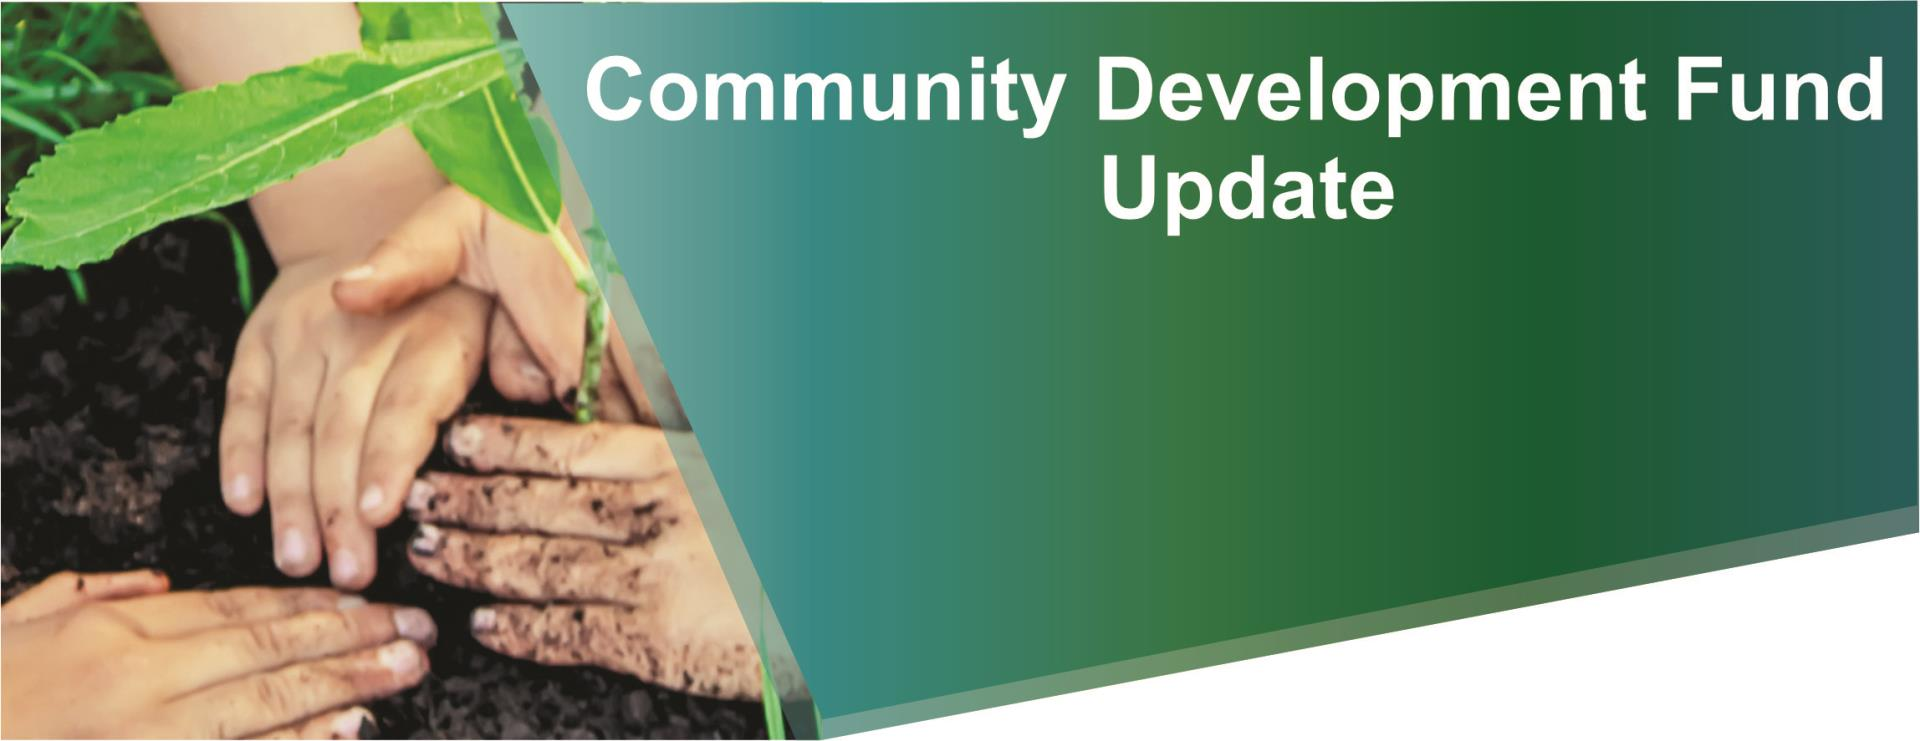 Community Development Fund Update